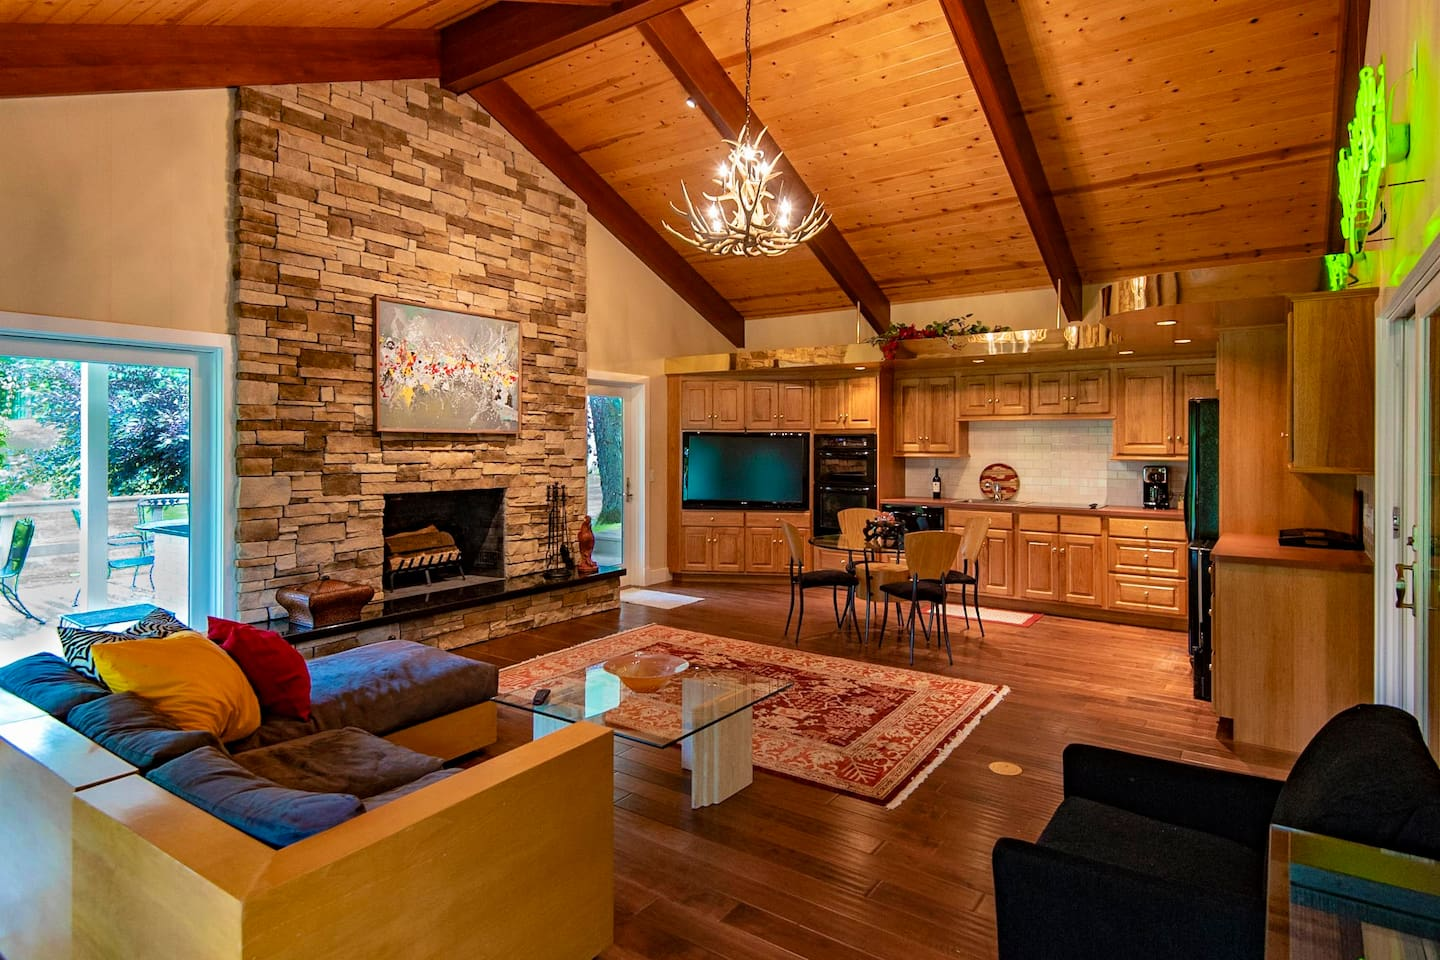 Full kitchen, fireplace, heated floors and access to the deck with built-in grill.